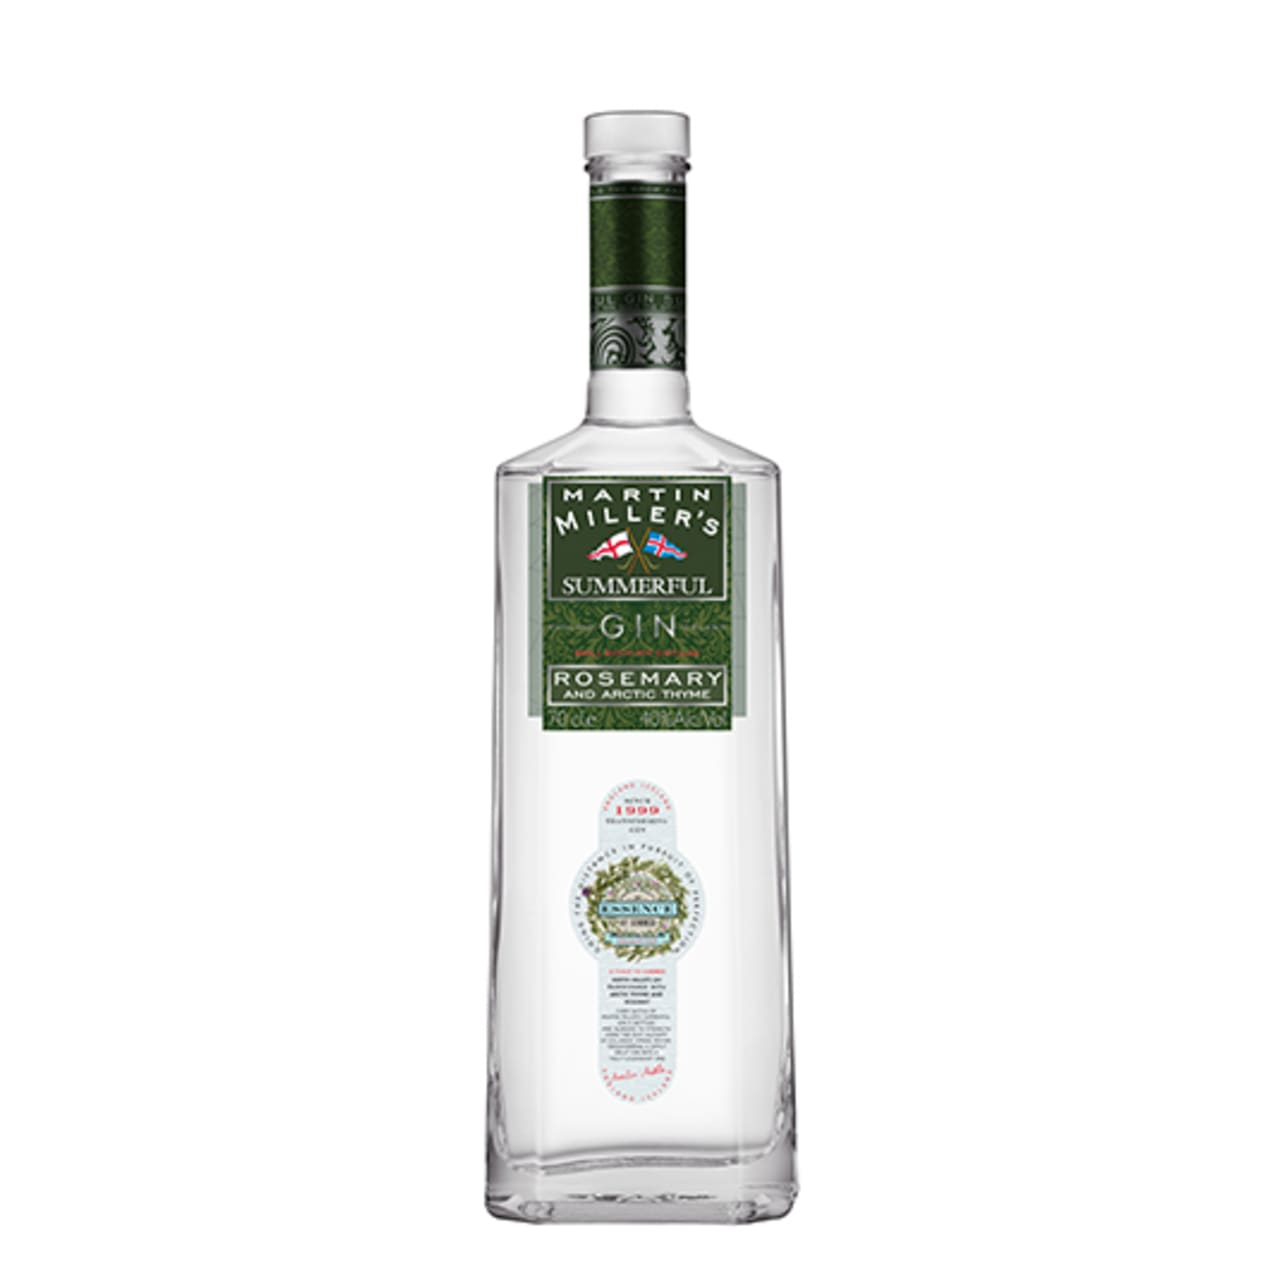 Product Image - Martin Miller's Summerful Gin